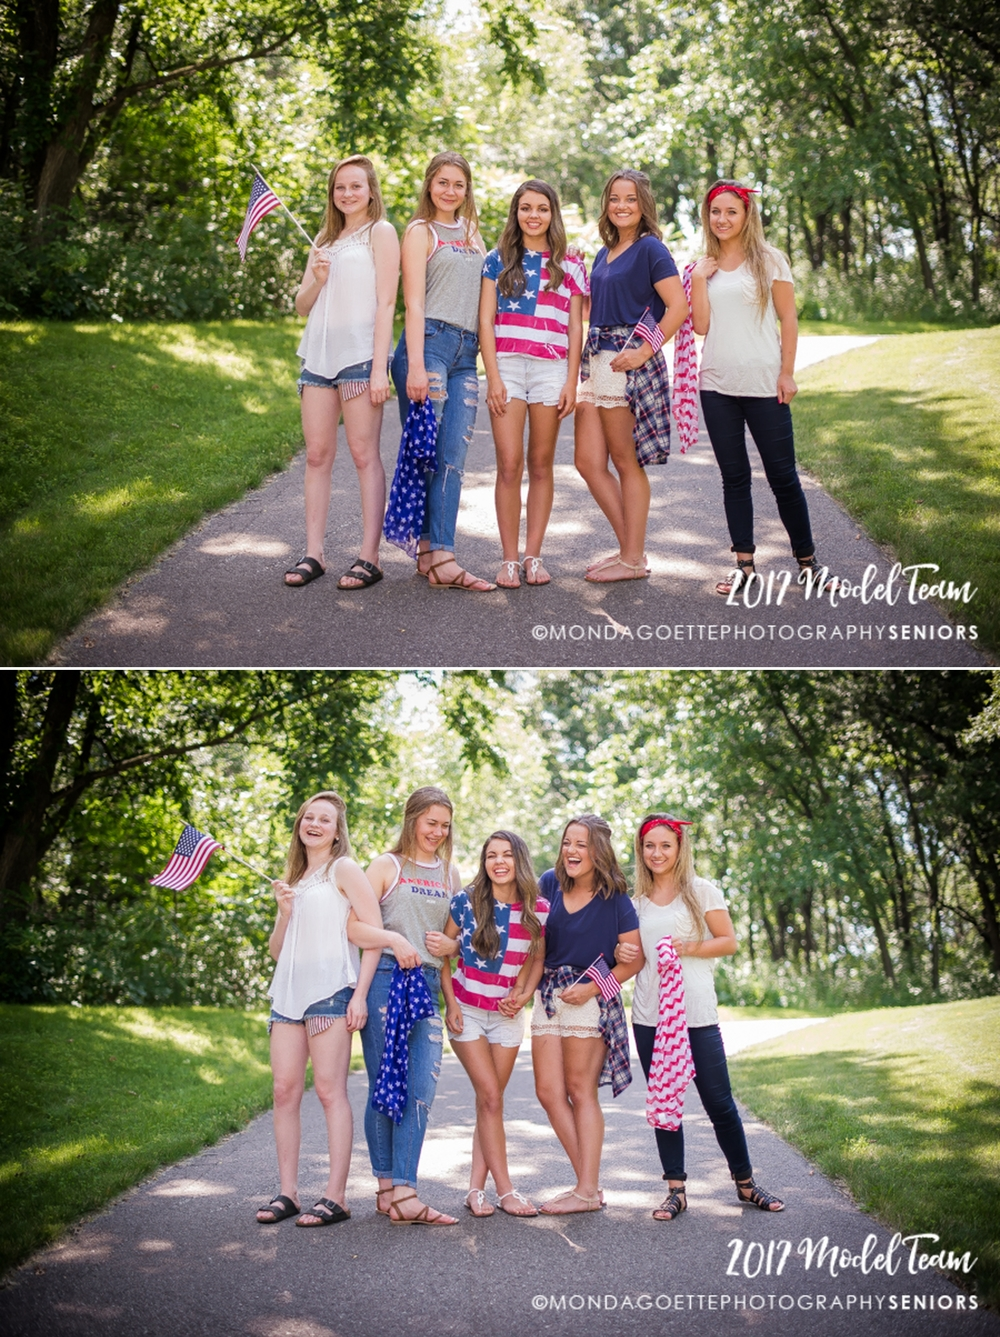 St-Paul-Minnesota-senior-sessions-with-monda